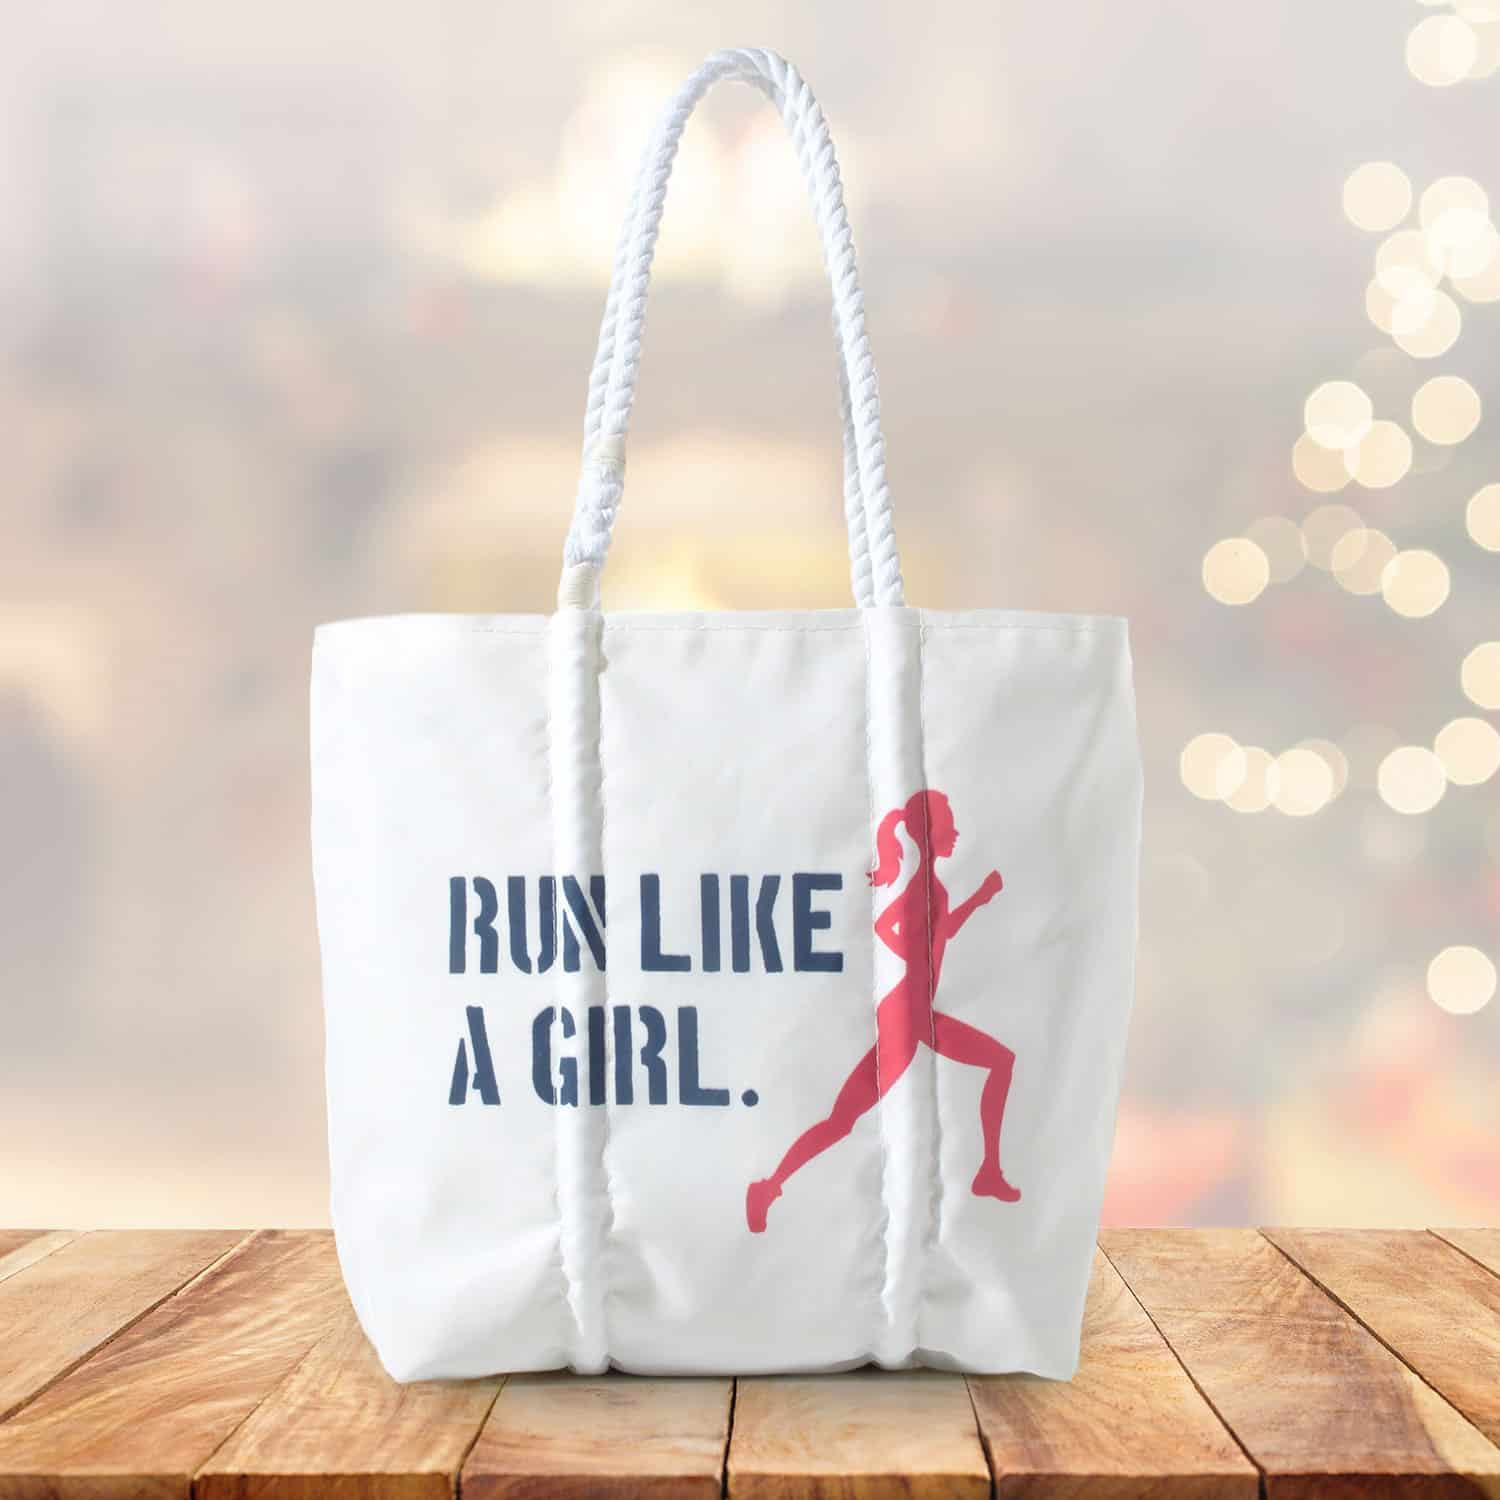 Image of a Sea Bags Tote for Runners